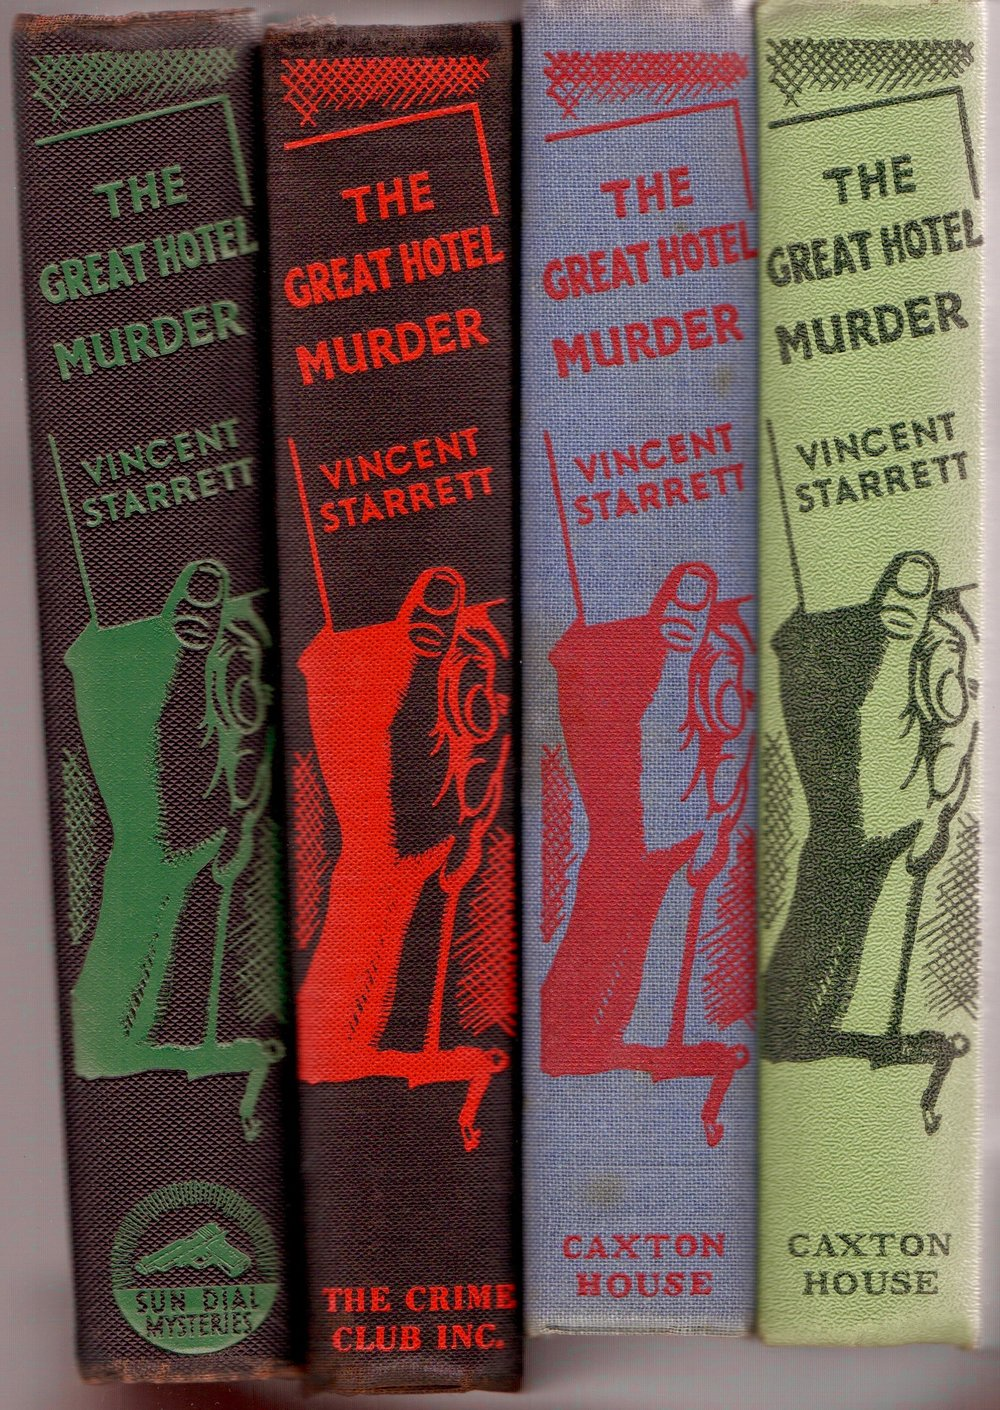 The four spines of the variant editions and states of the novel,  The Great Hotel Murder.